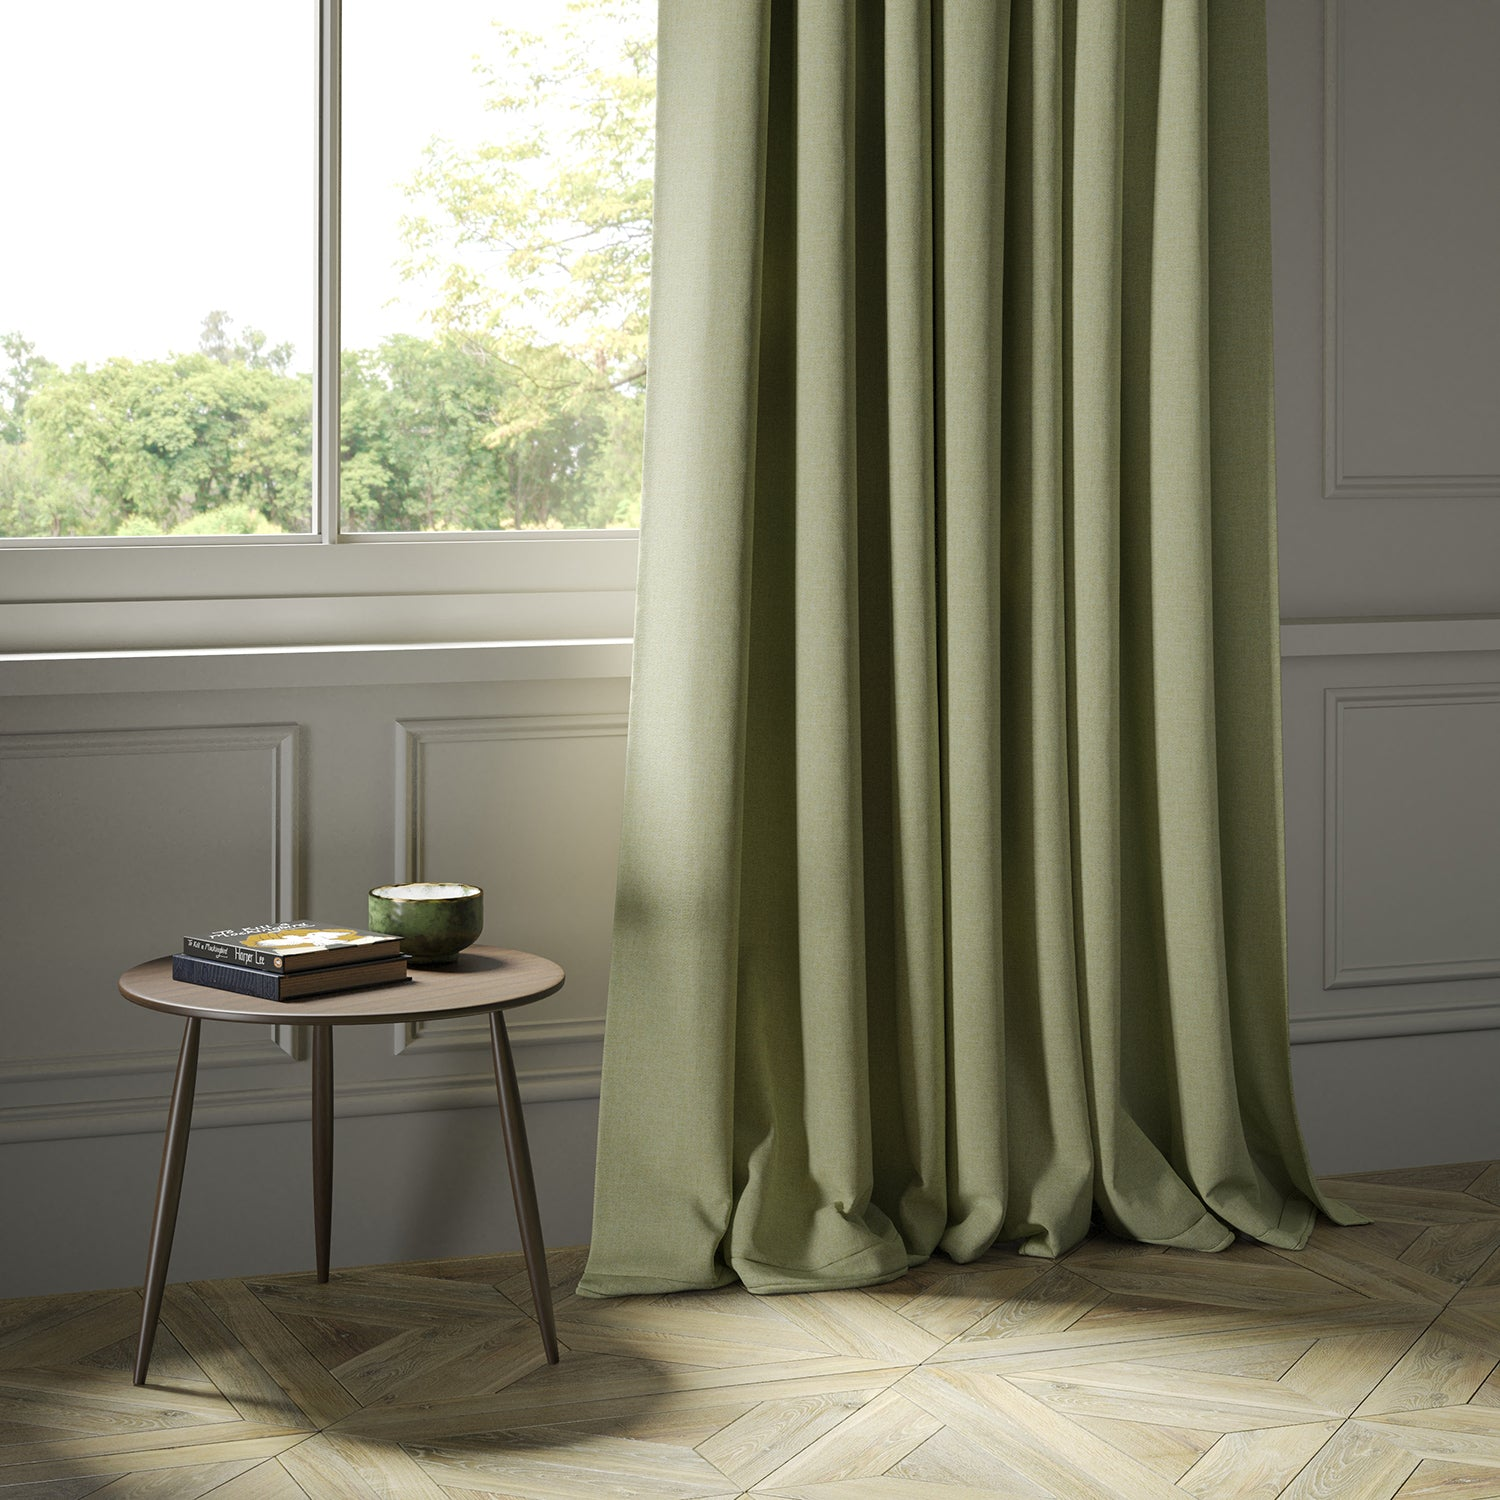 Curtains in a green Scottish wool herringbone fabric